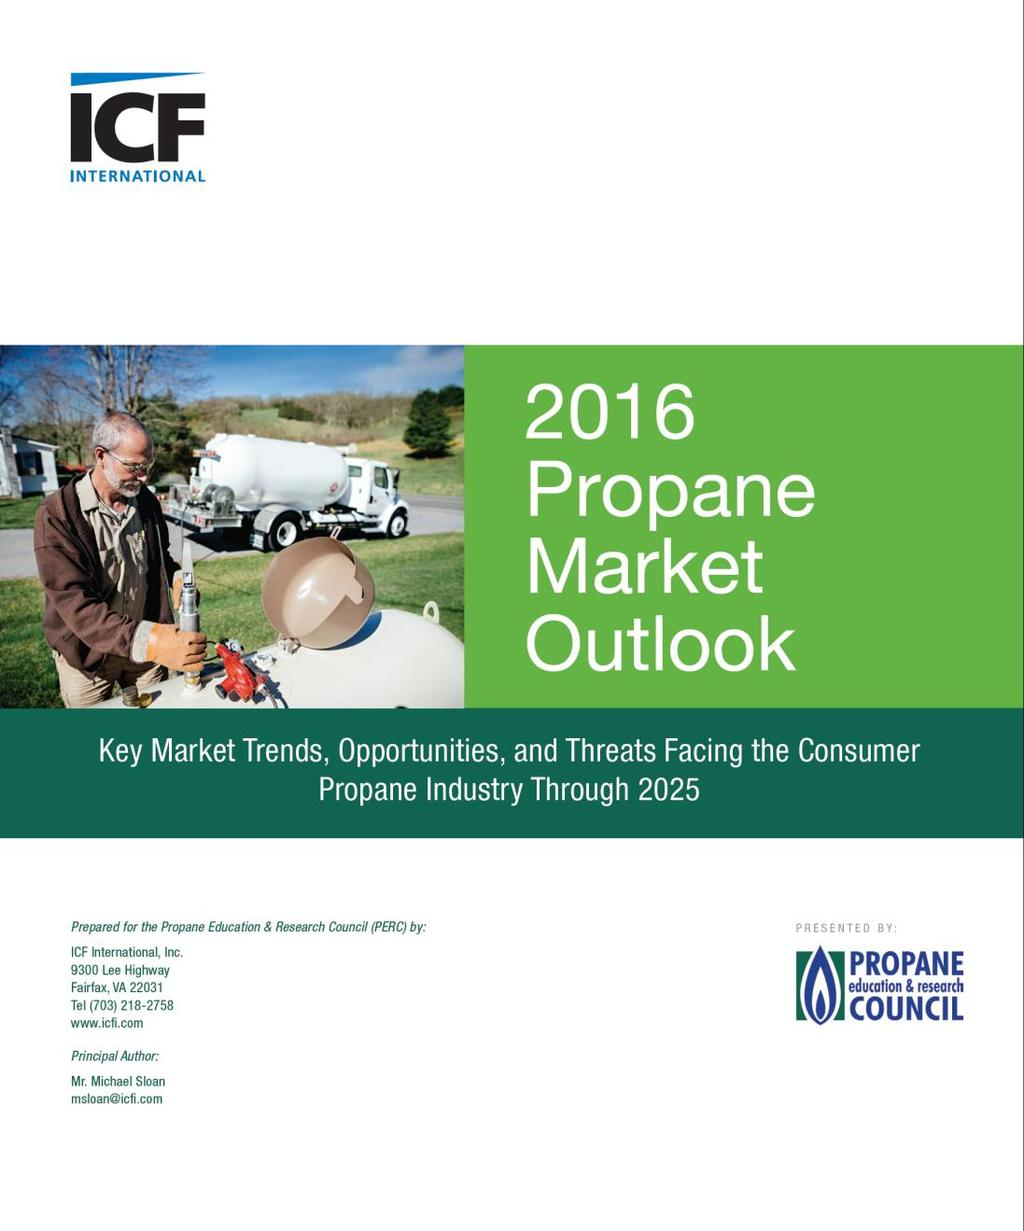 Much of the information in this presentation is available in the PERC report 2016 Propane Market Outlook